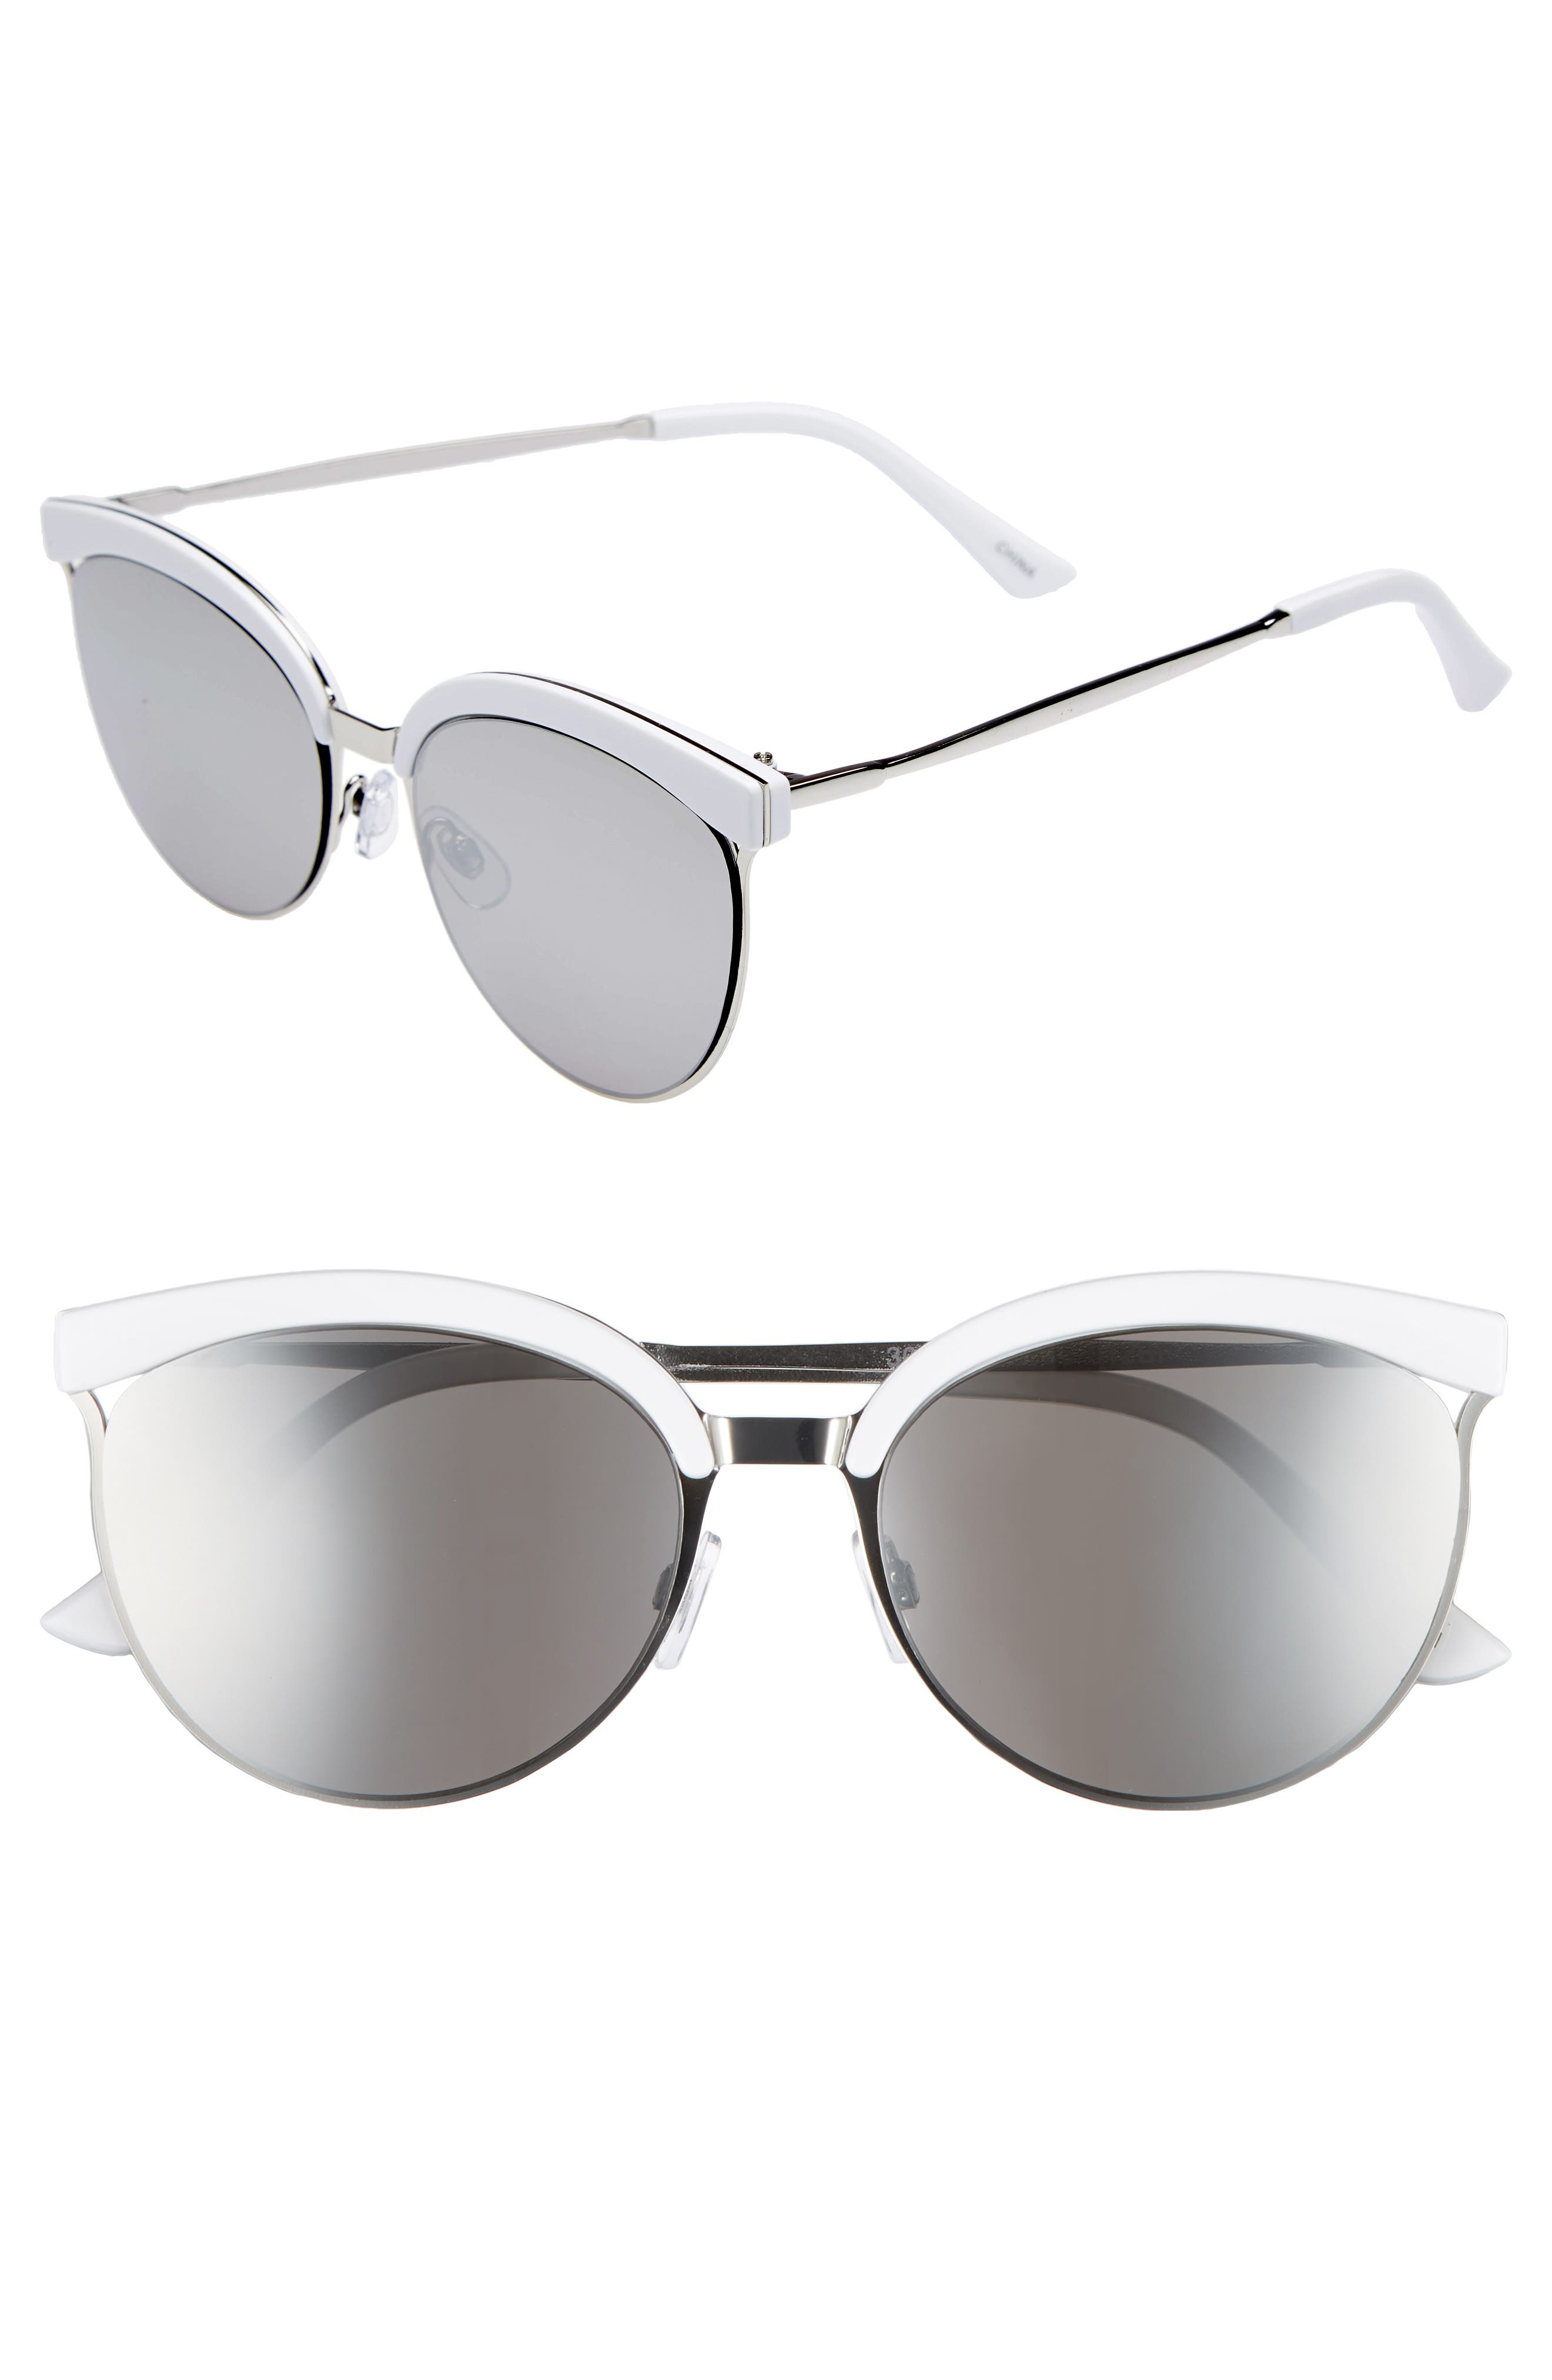 57mm Round Sunglasses,                             Main thumbnail 1, color,                             White/ Silver